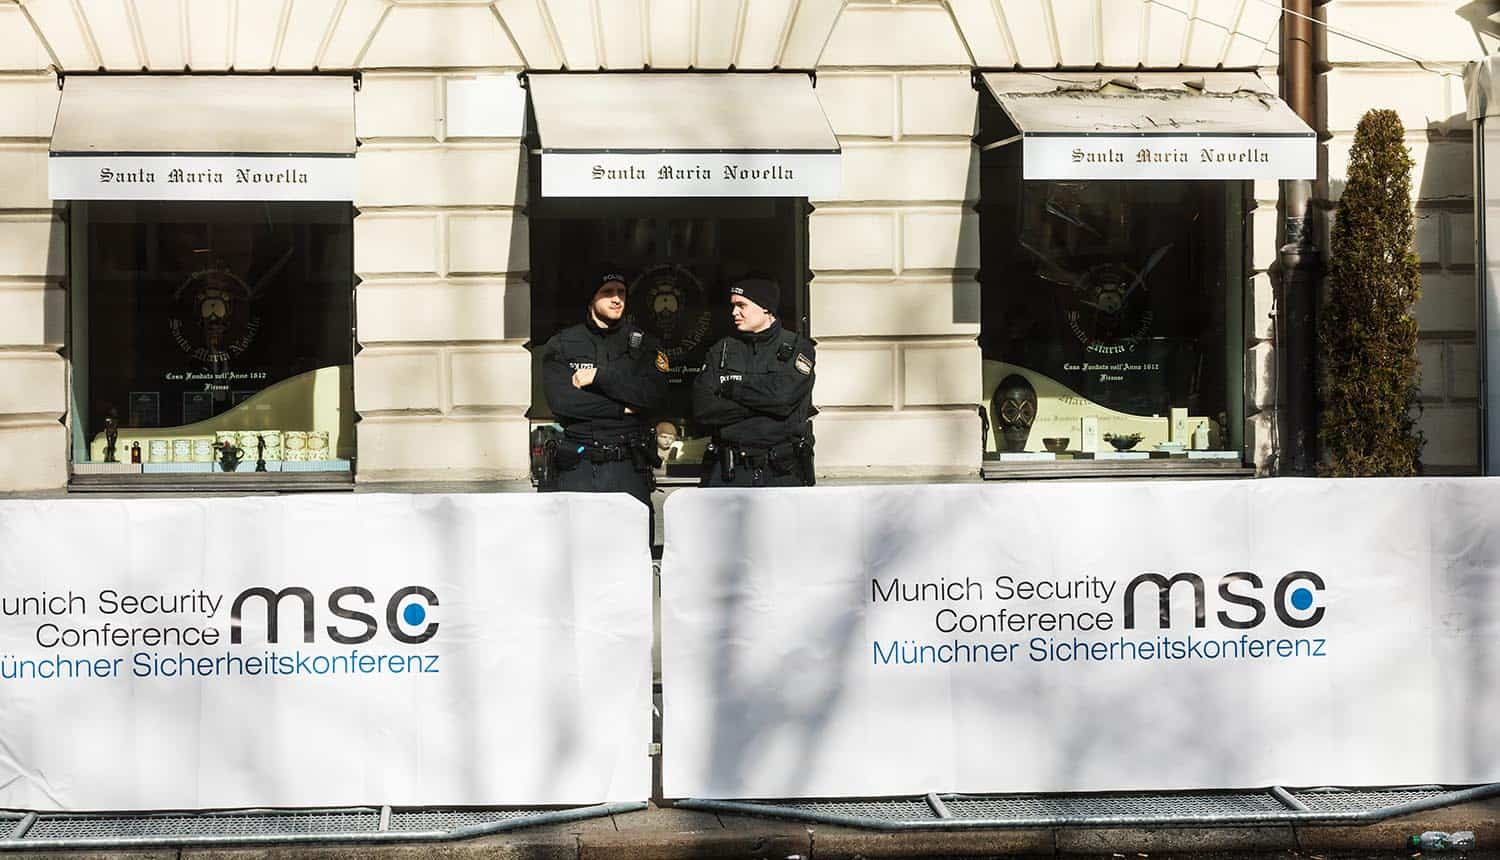 Police at Munich Security Conference showing Iranian hackers and intelligence collection